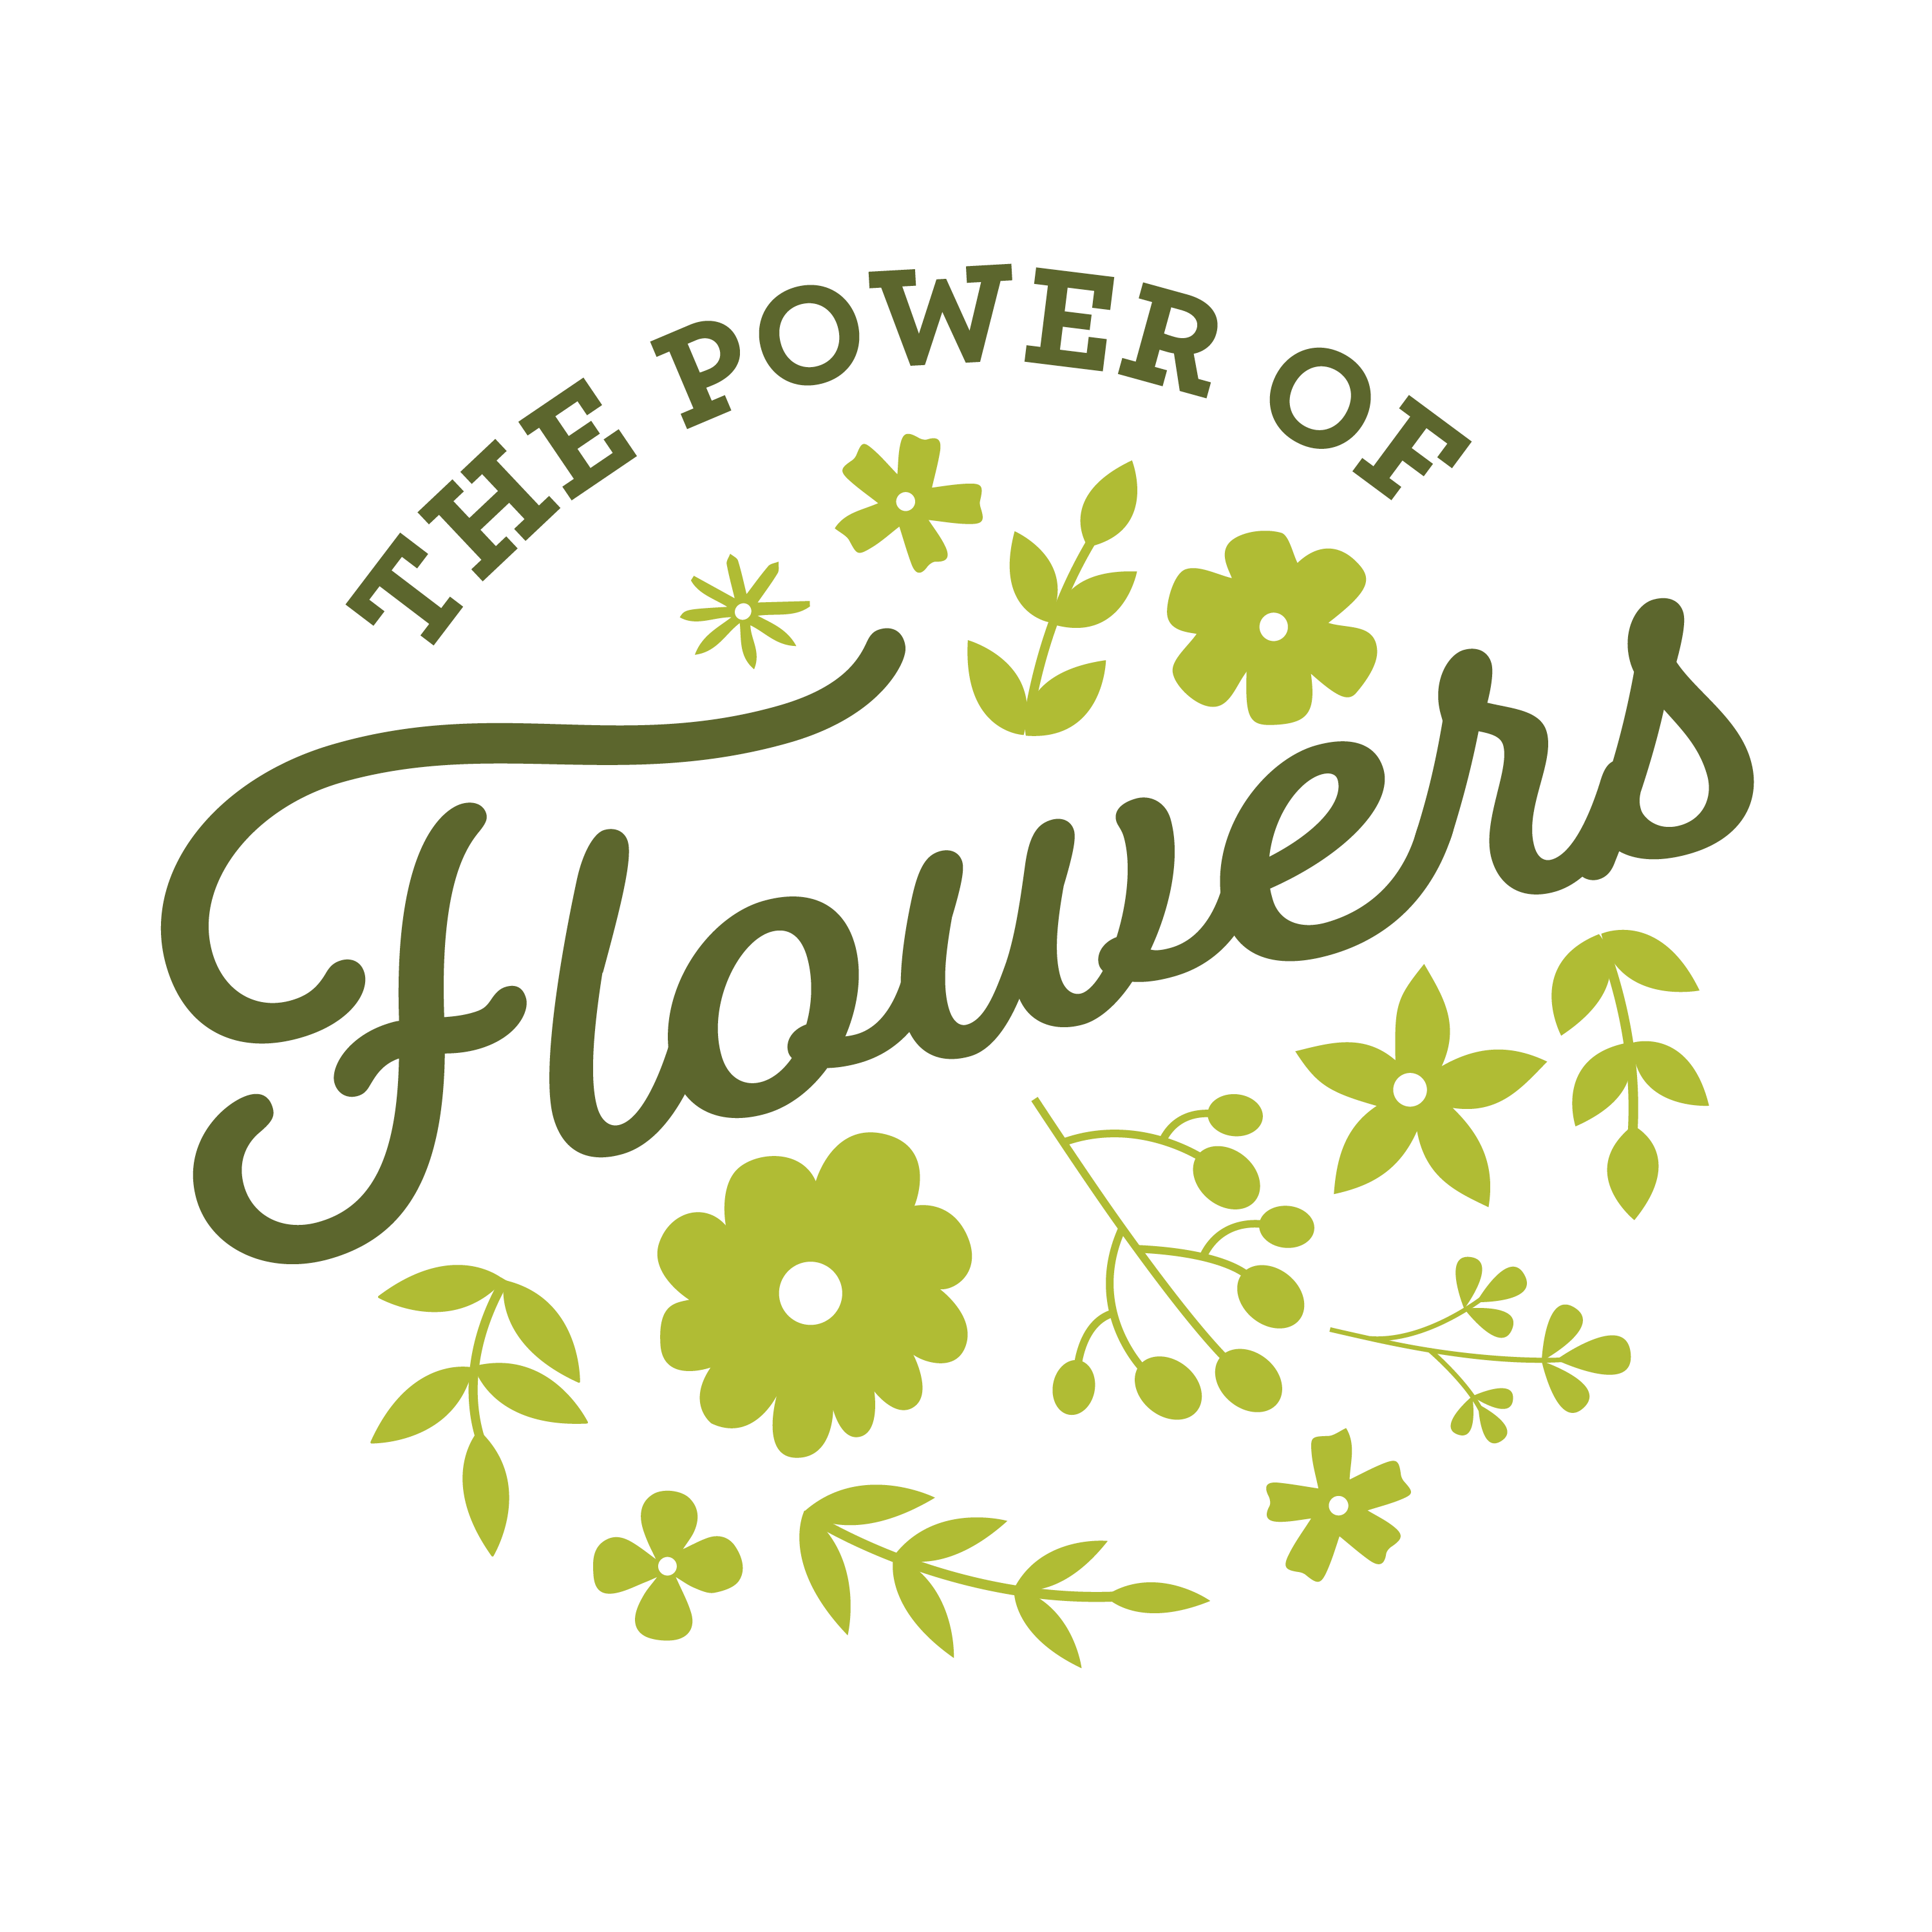 Open The Power of Flowers logo graphic